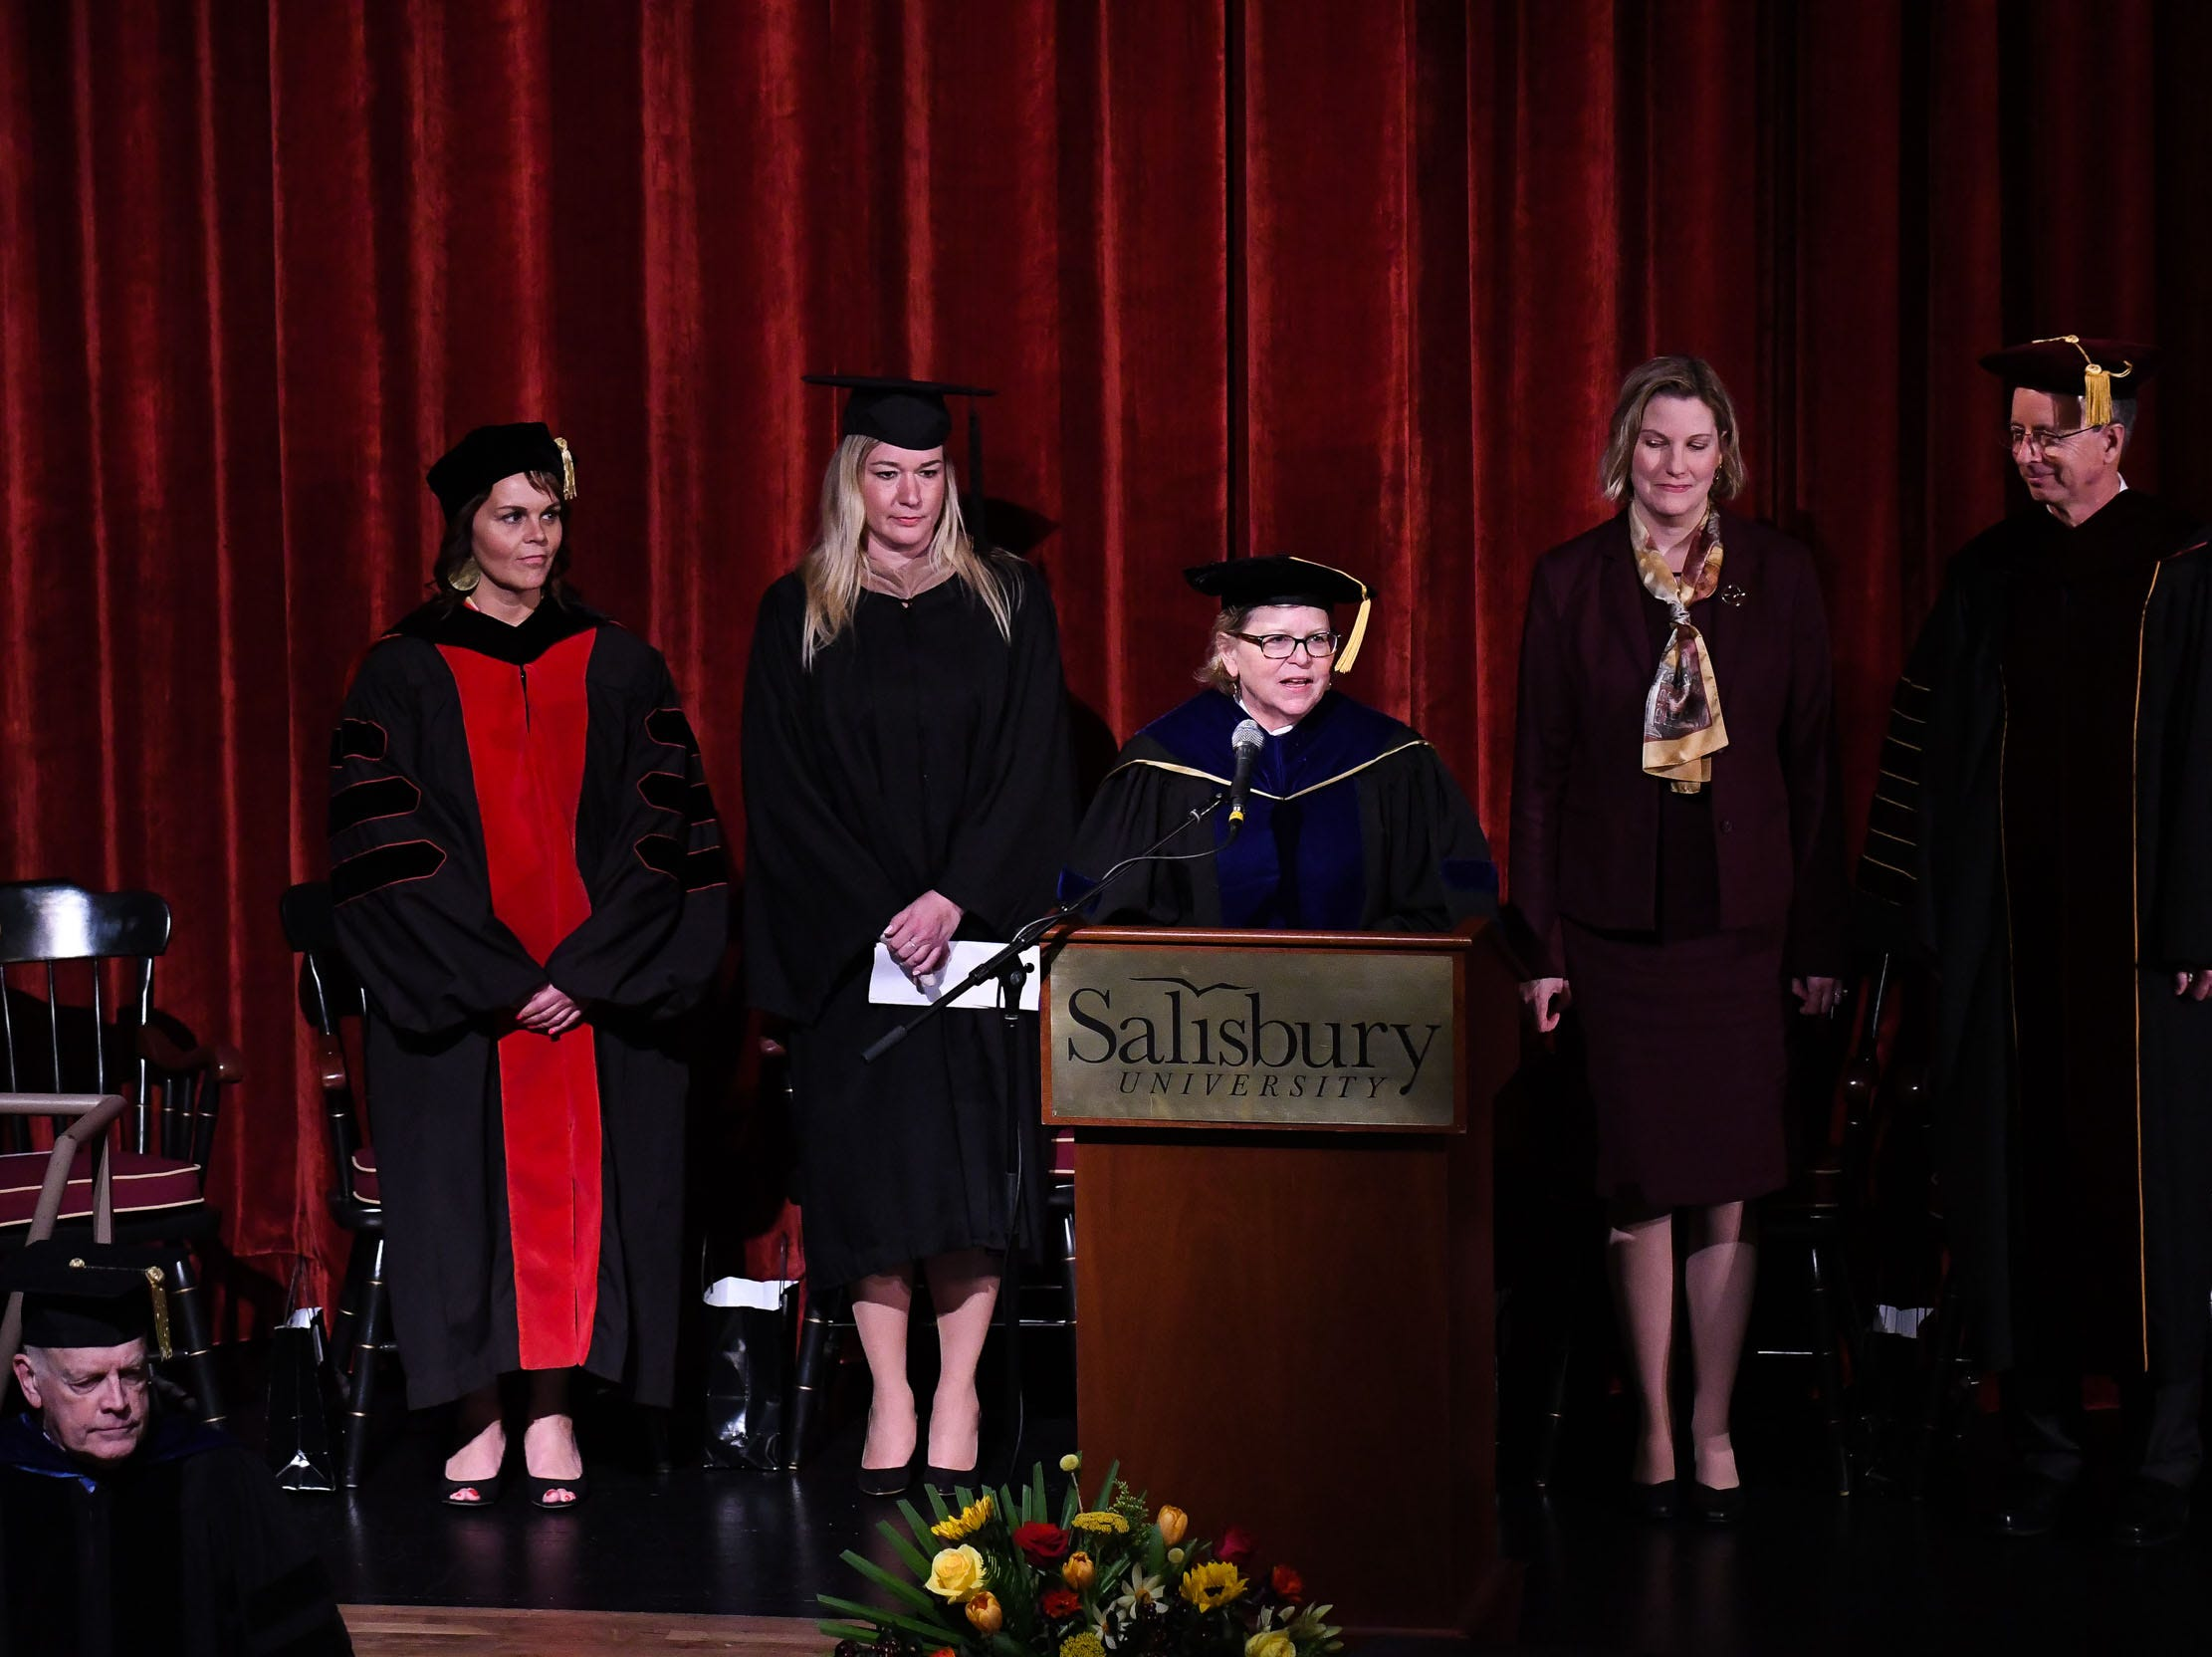 Dr. Karen Olmstead, Provost & Senior Vice President Academic Affairs, welcomes everyone to the inauguration of Dr. Charles A. Wight as Salisbury University's ninth president on Wednesday, April 10, 2019 during a ceremony held at Holloway Hall on the campus of Salisbury University.